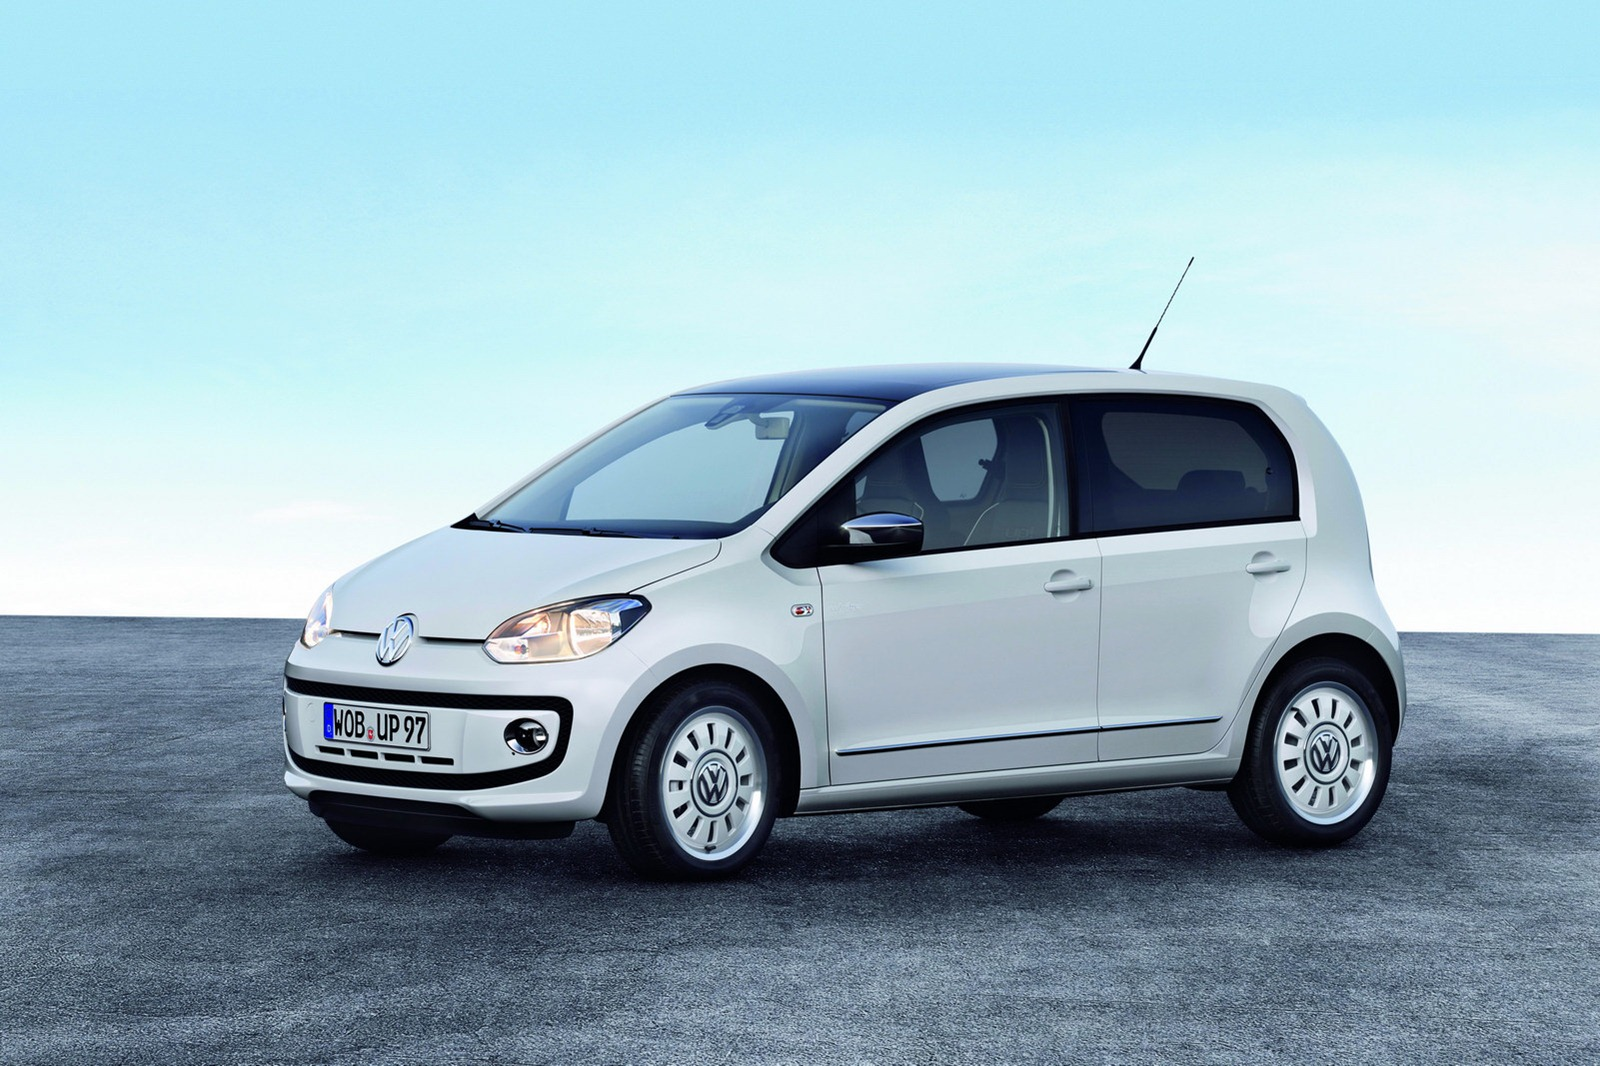 volkswagen up 5 porte immagini ufficiali e dati tecnici. Black Bedroom Furniture Sets. Home Design Ideas